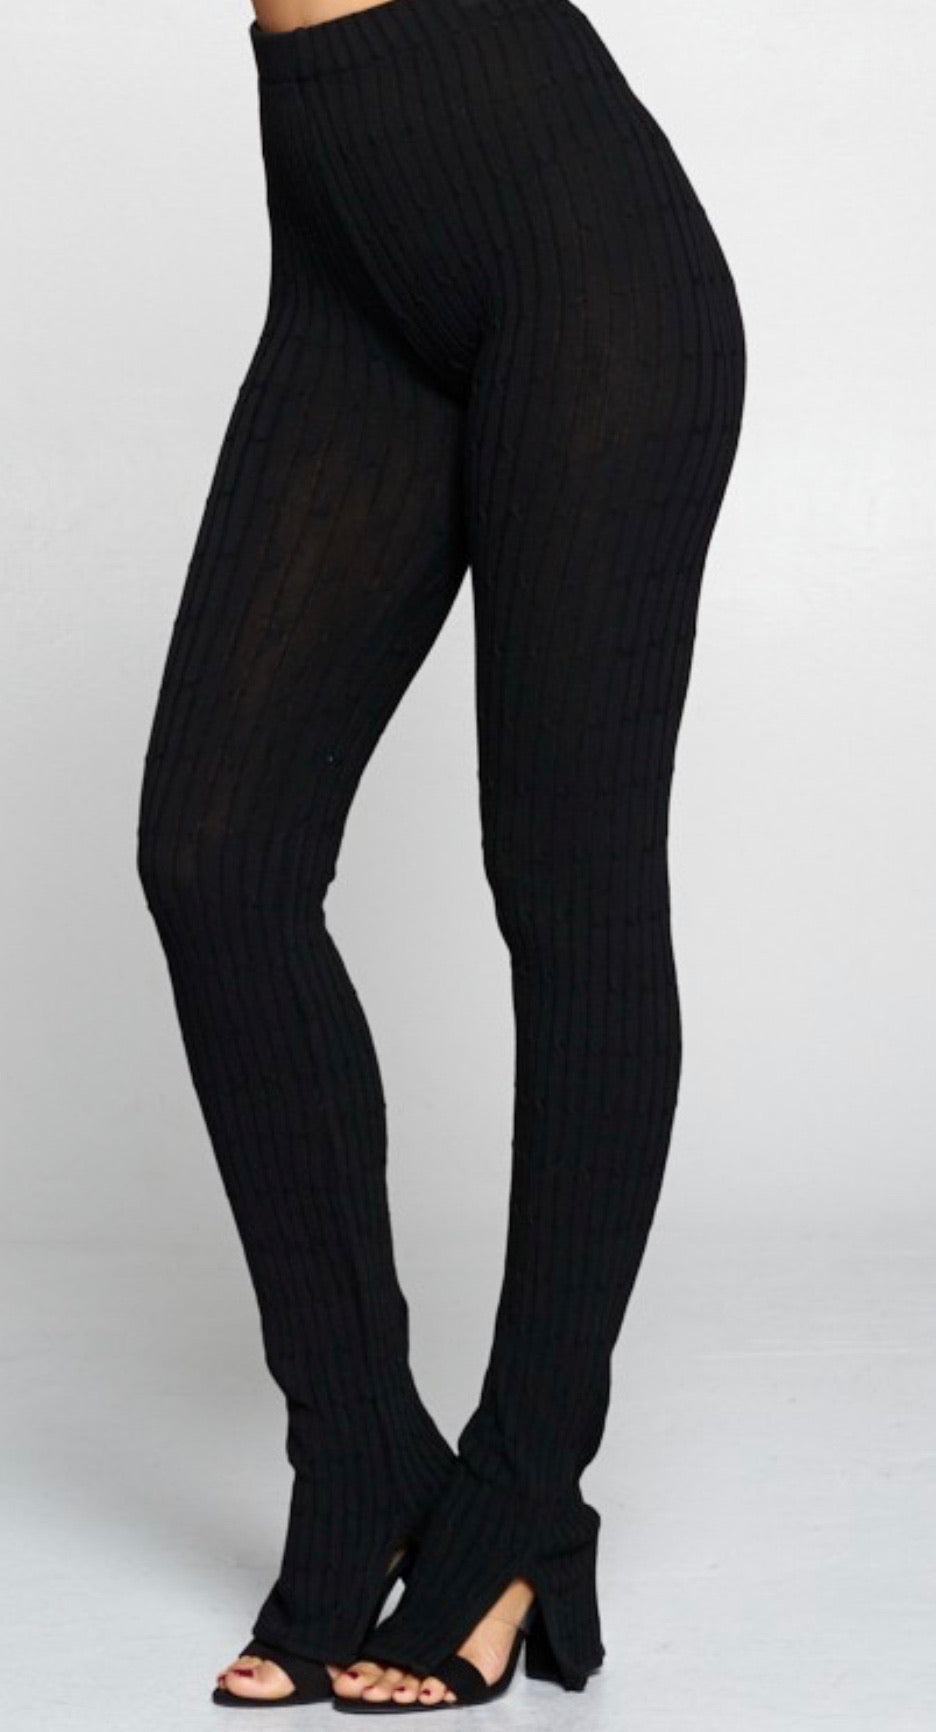 Black Slit Ankle Leggings